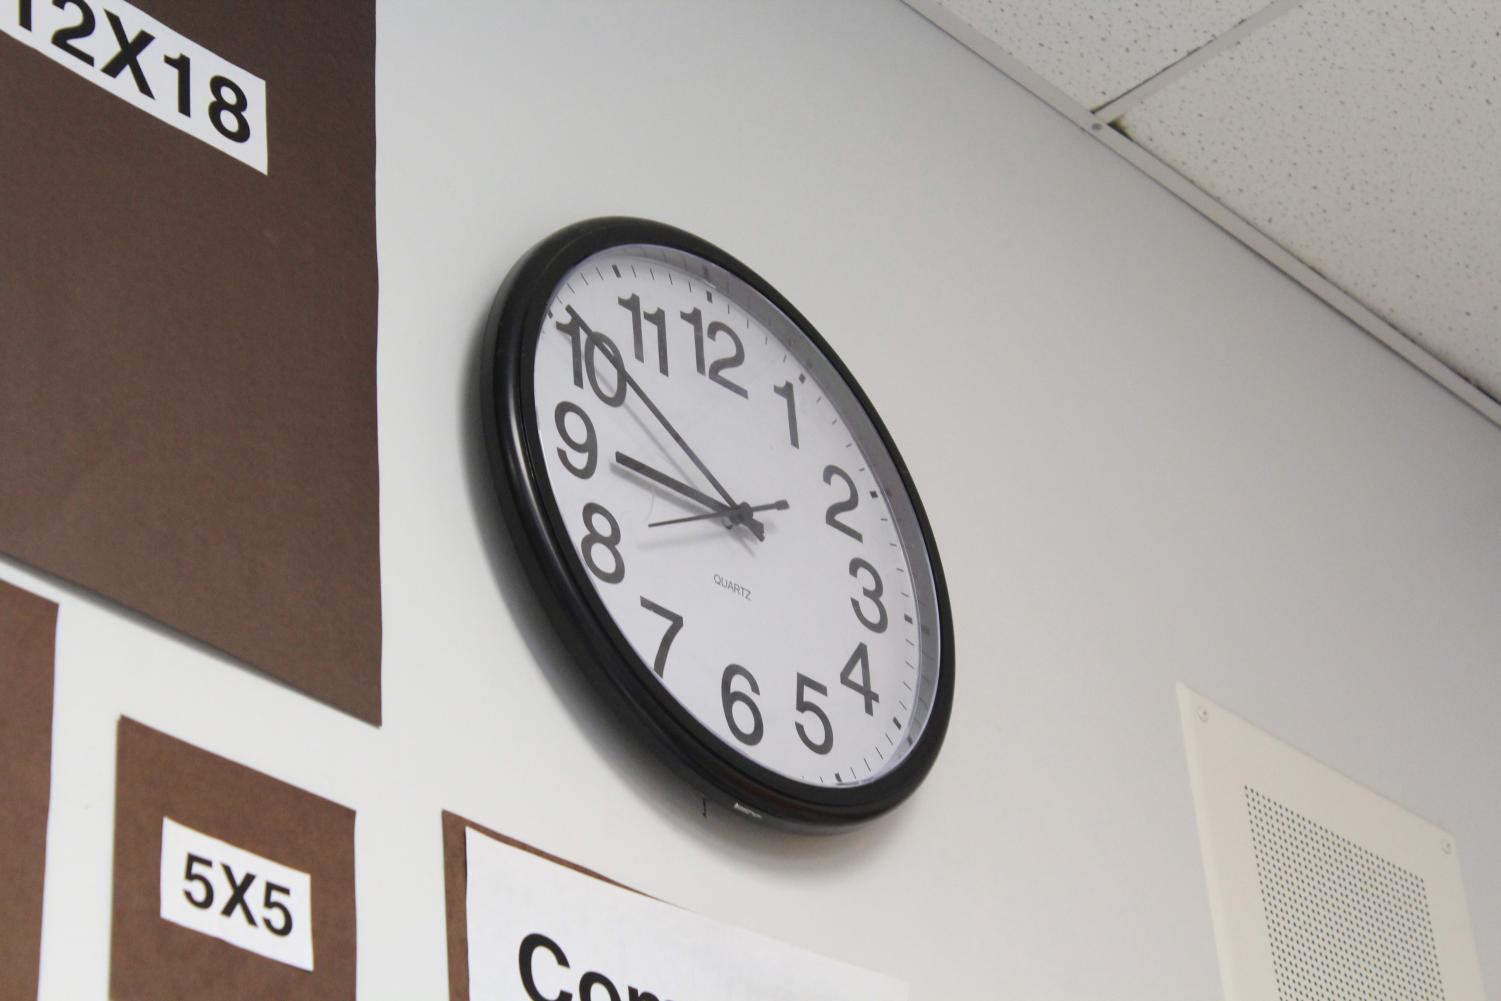 Students should get a minimum of around nine to nine and a half hours of sleep per day.